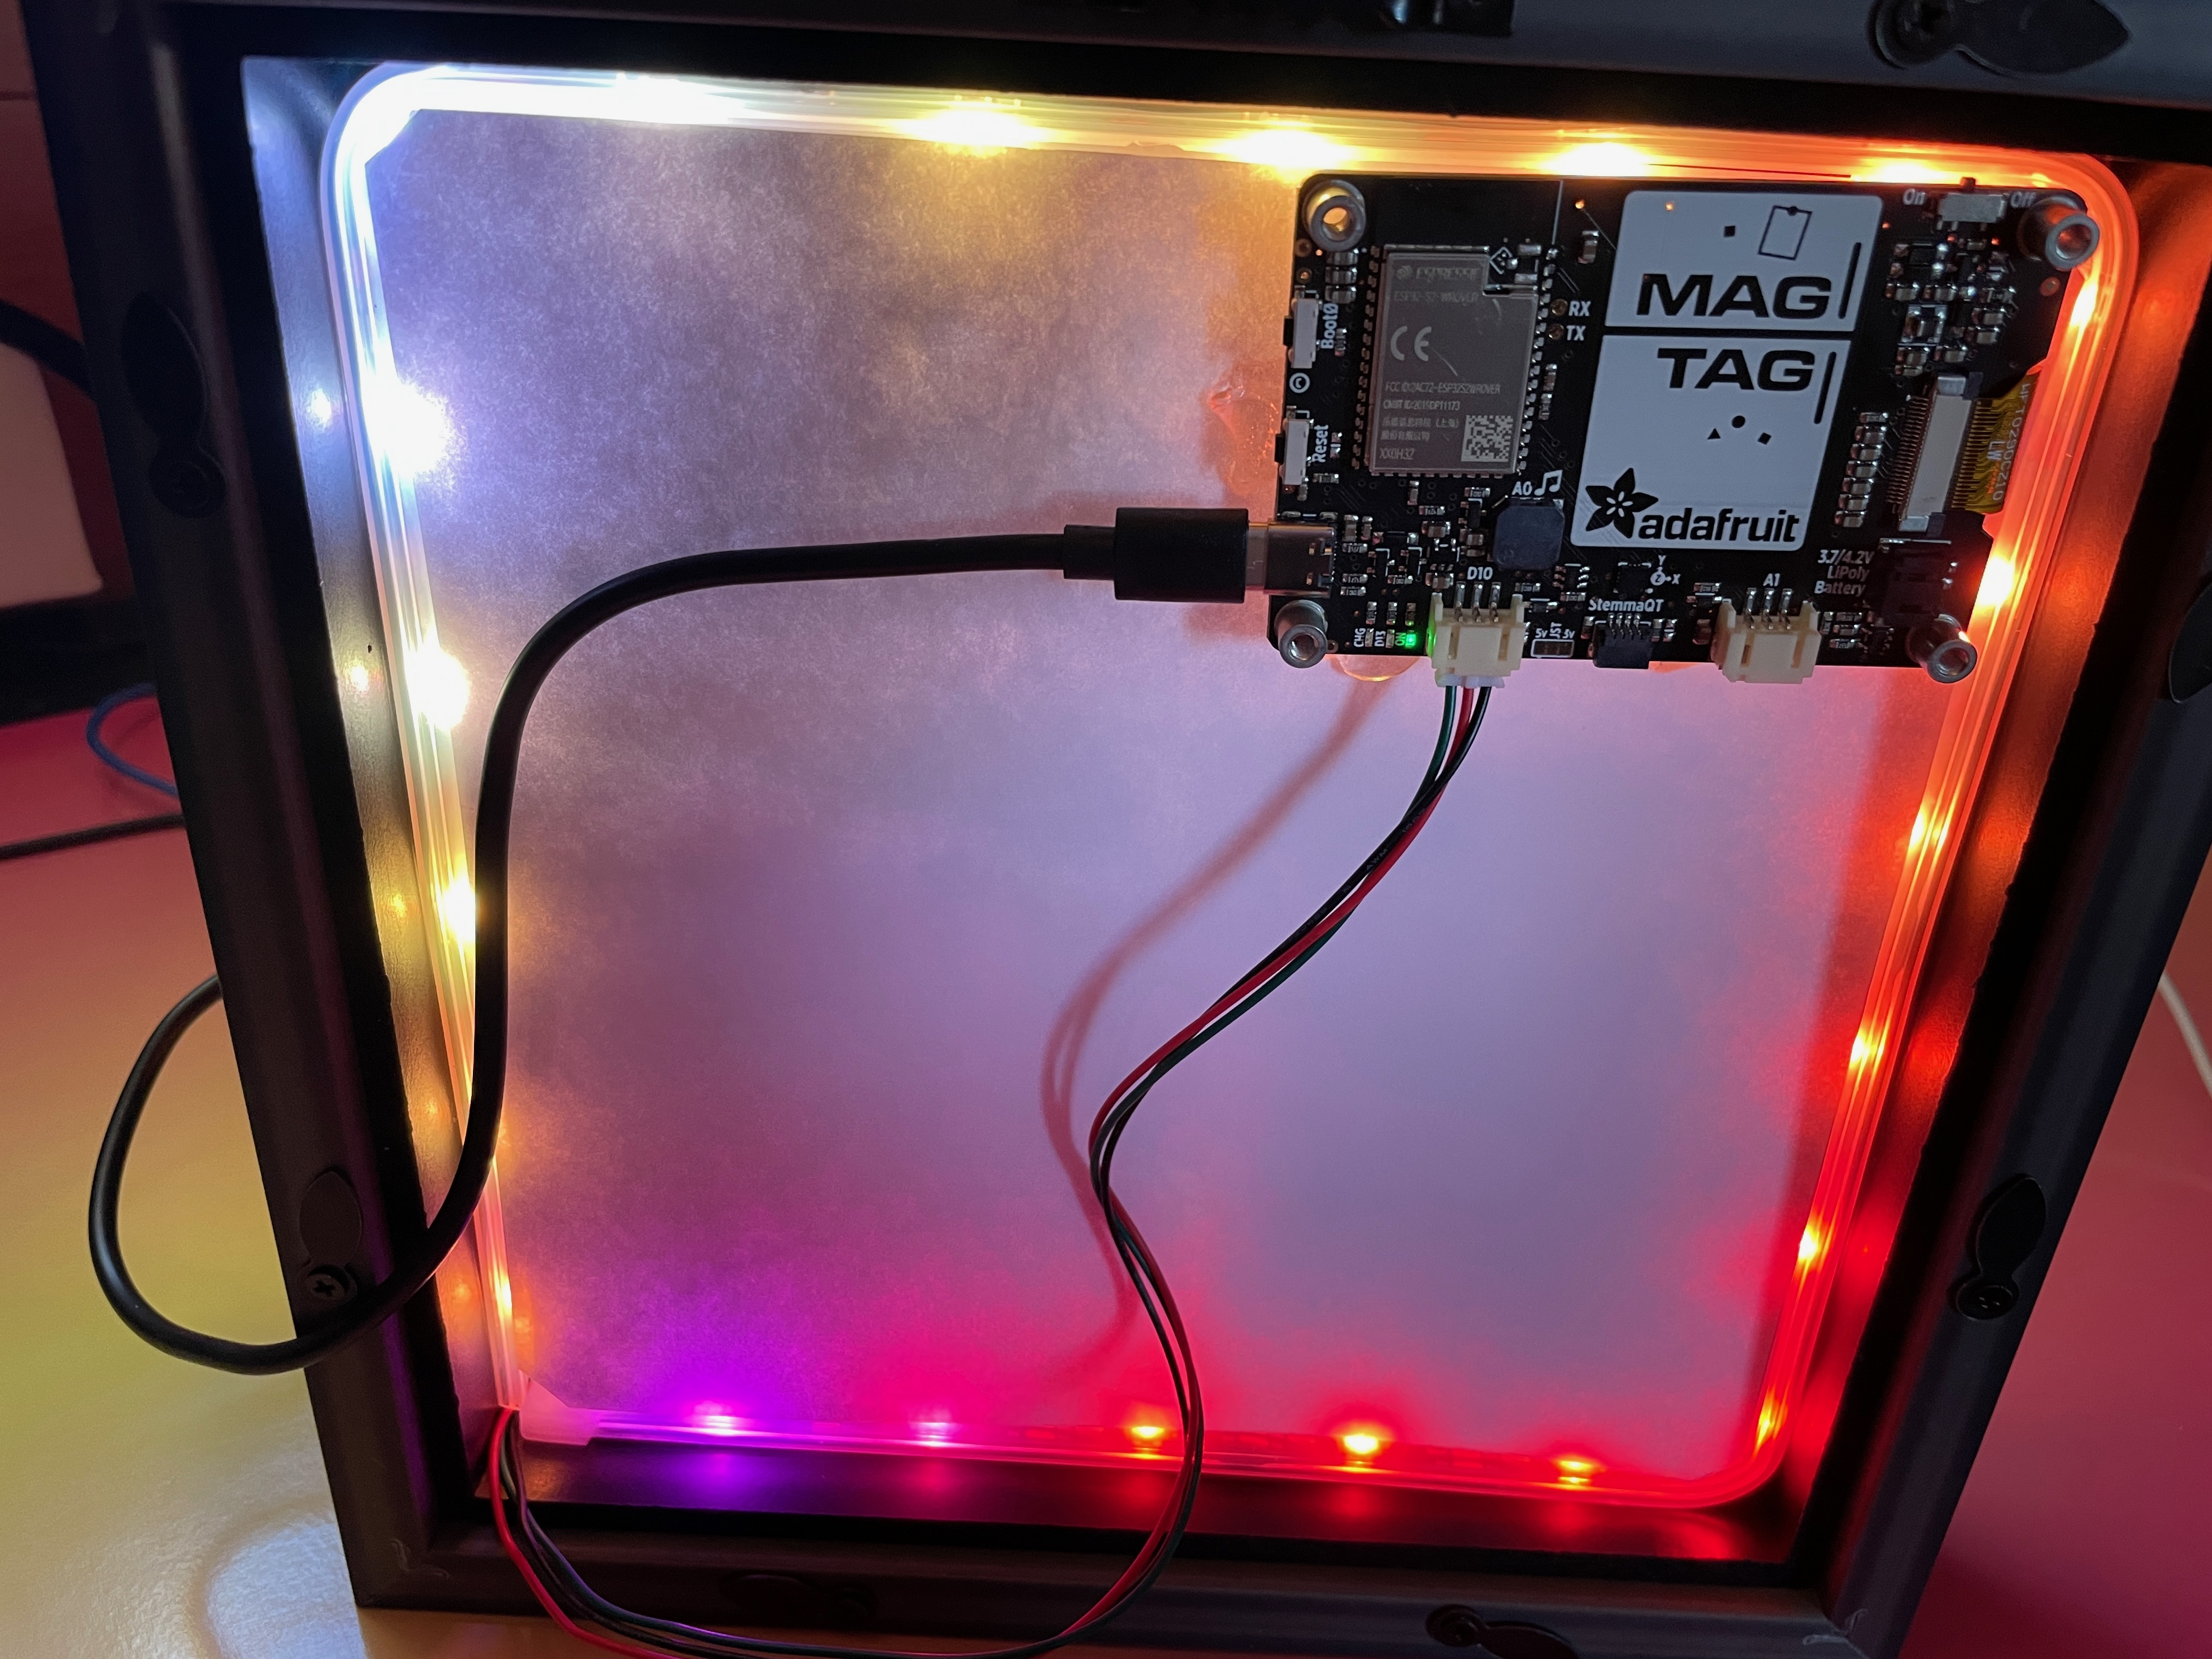 led_strips_15_attach_magtag_(1).jpeg